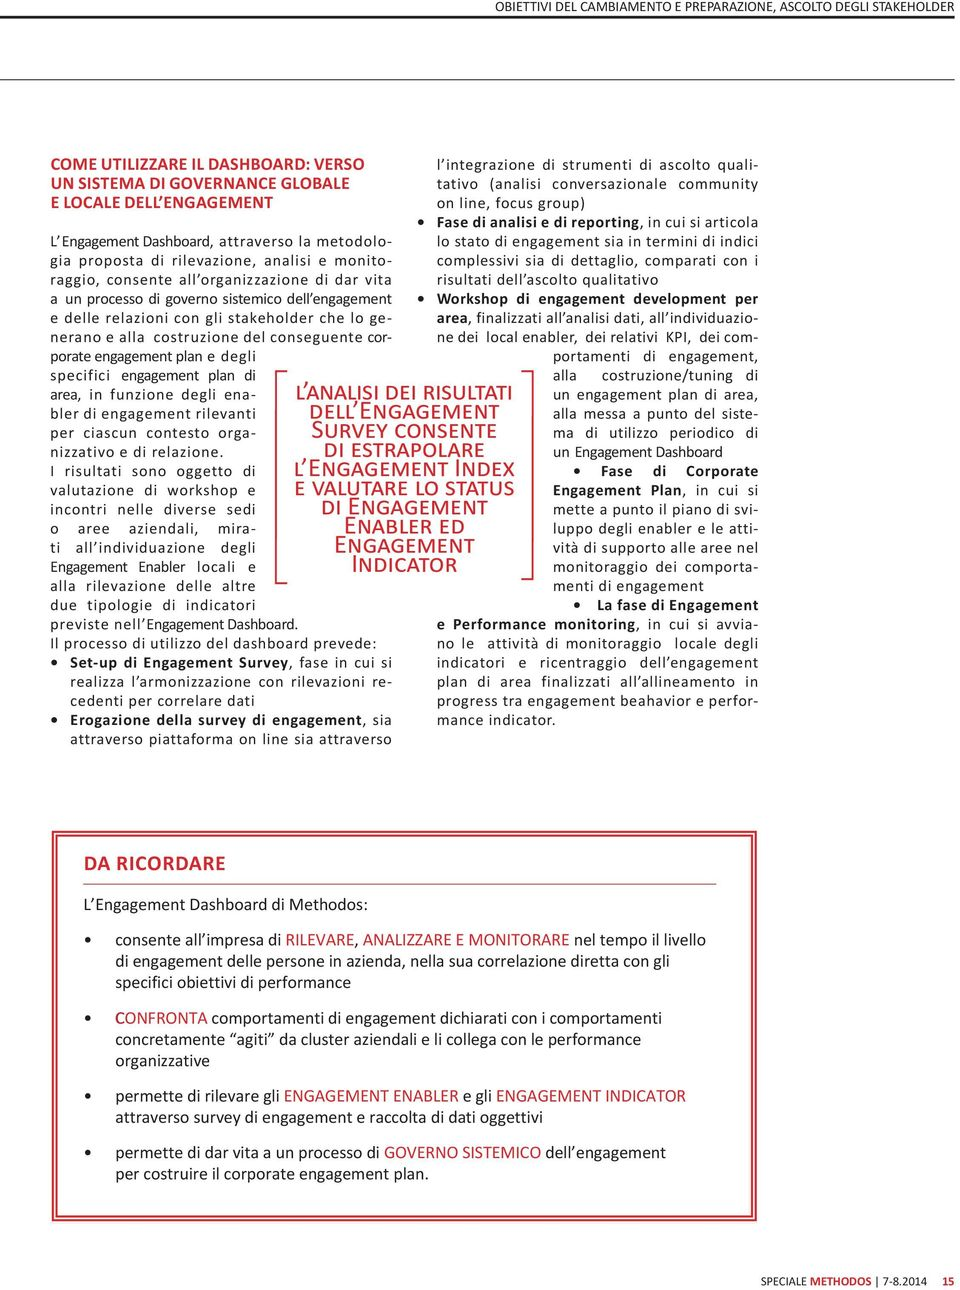 generano e alla costruzione del conseguente corporate engagement plan e degli specifici engagement plan di area, in funzione degli enabler di engagement rilevanti per ciascun contesto organizzativo e